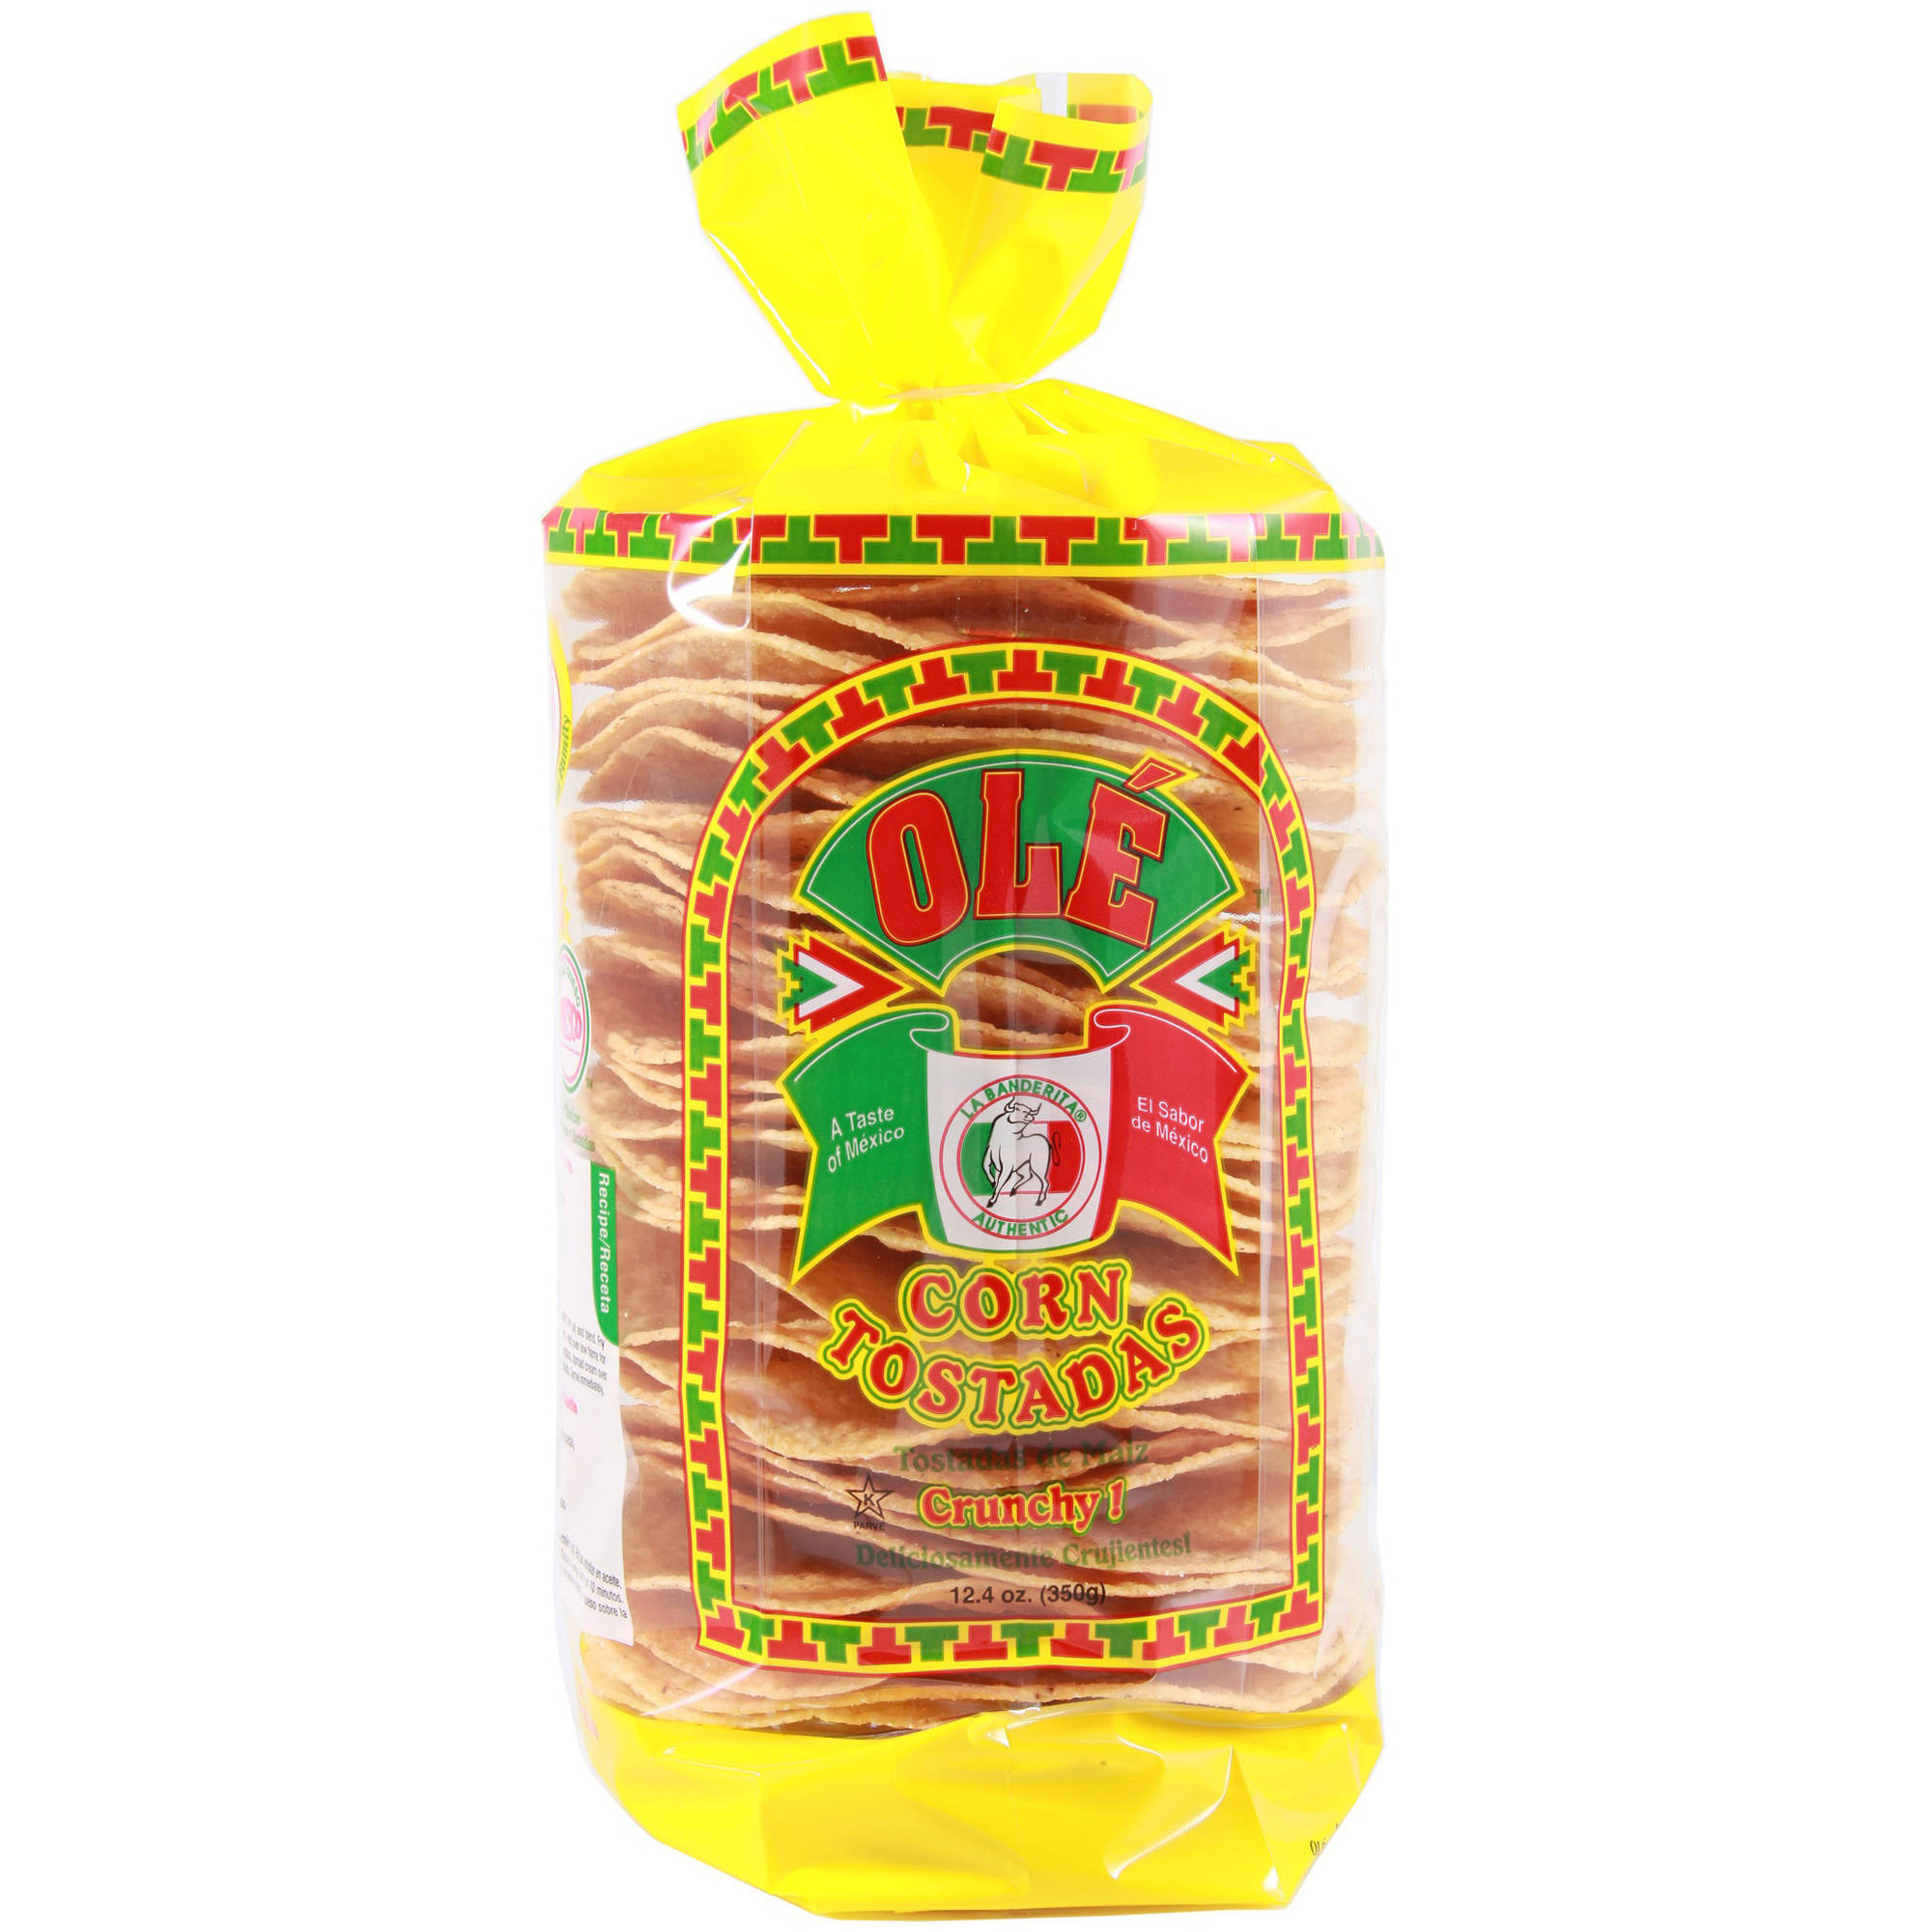 Ole Corn Tostadas, 12.4 oz, (Pack of 6)